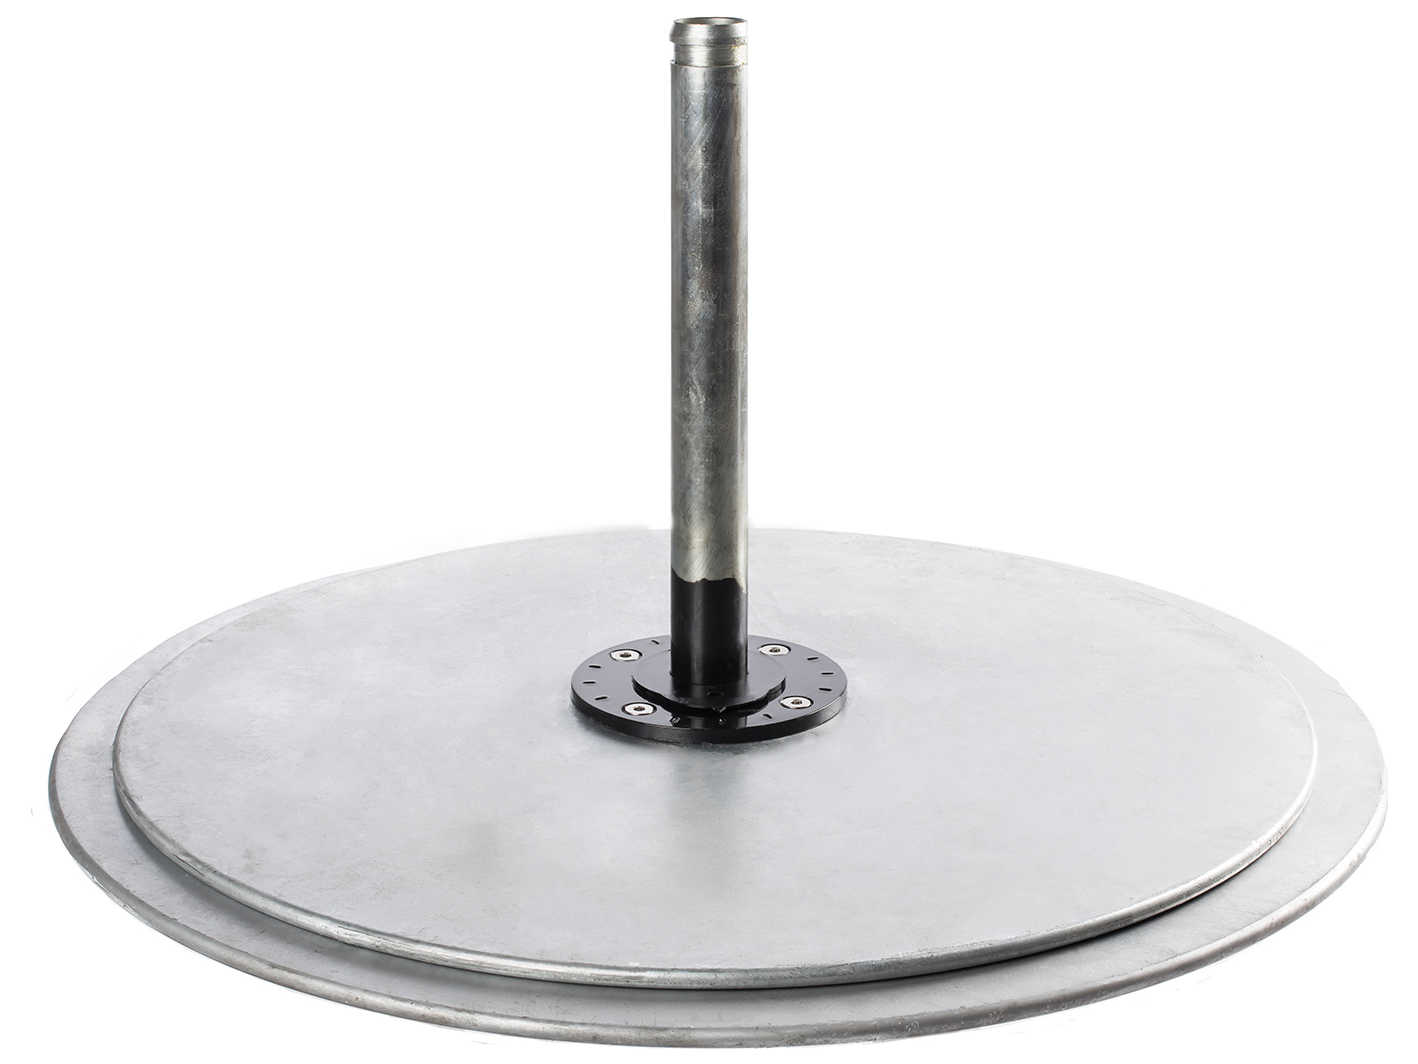 Frankford Umbrellas Bases And Base Accessories & Stands